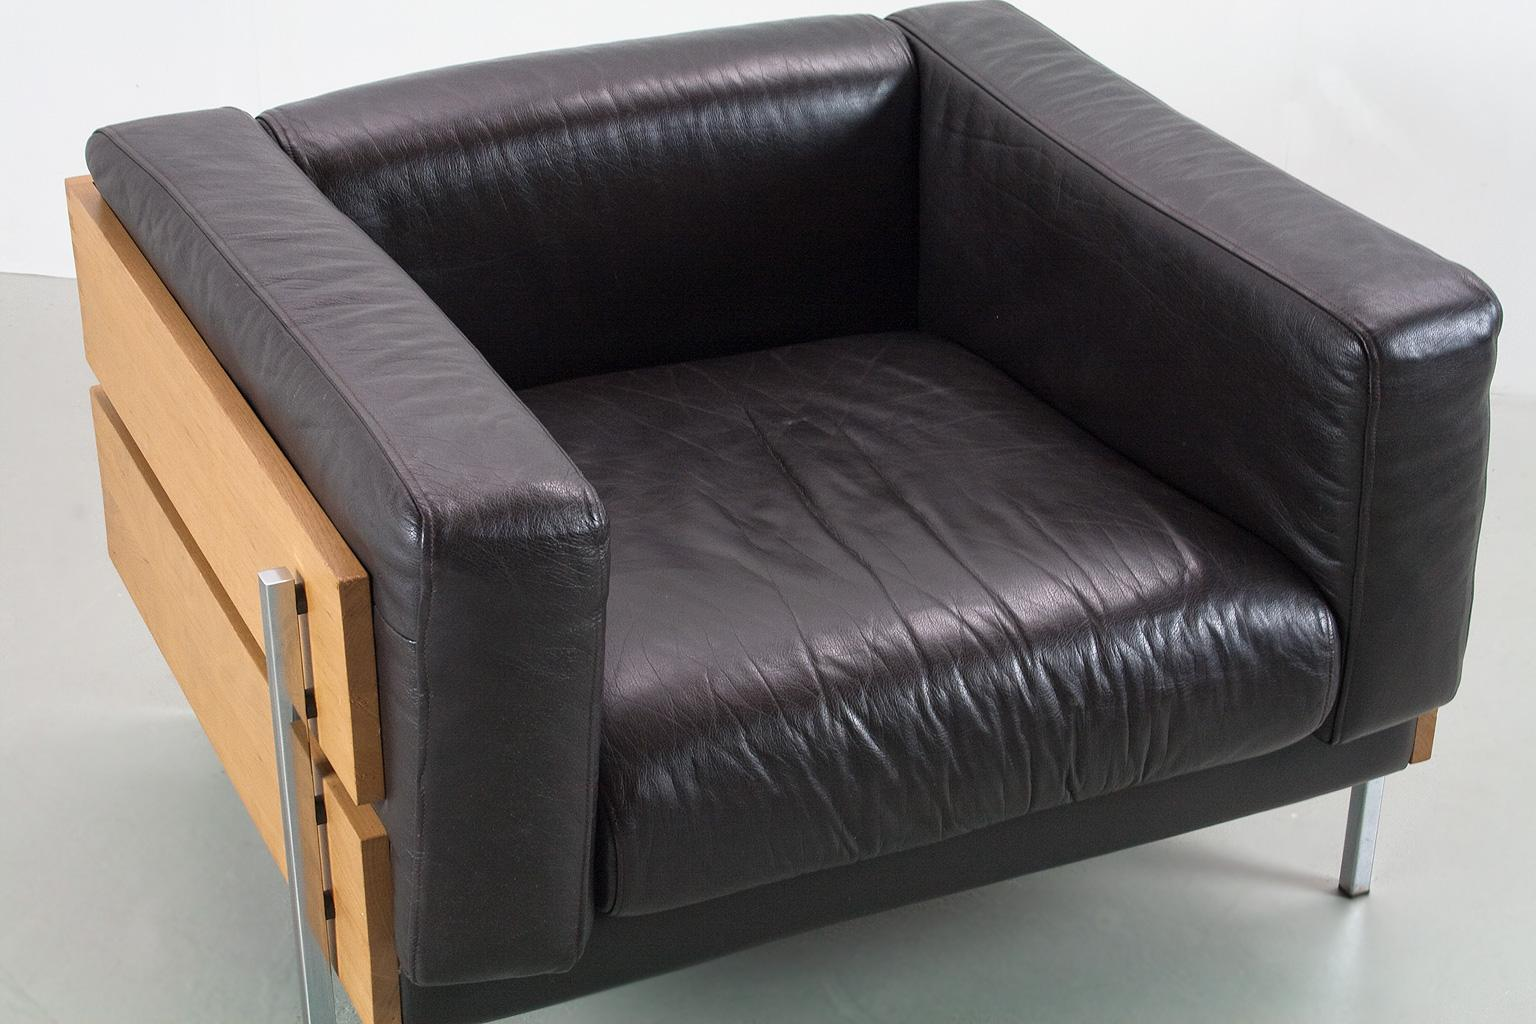 Superb Robin Day Days Forum Lounge Or Club Chair In Brown Leather Ibusinesslaw Wood Chair Design Ideas Ibusinesslaworg